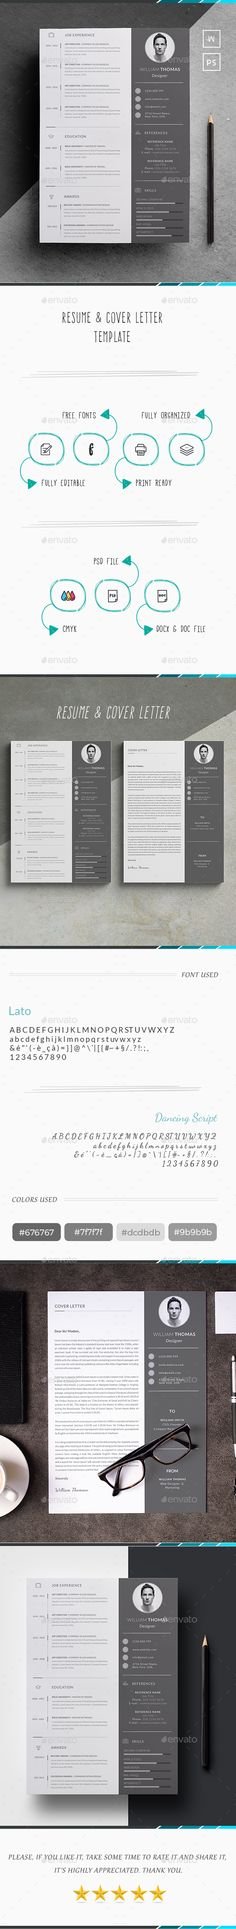 Resume Template PSD, AI, MS Word Resume Templates Pinterest - awesome resumes templates